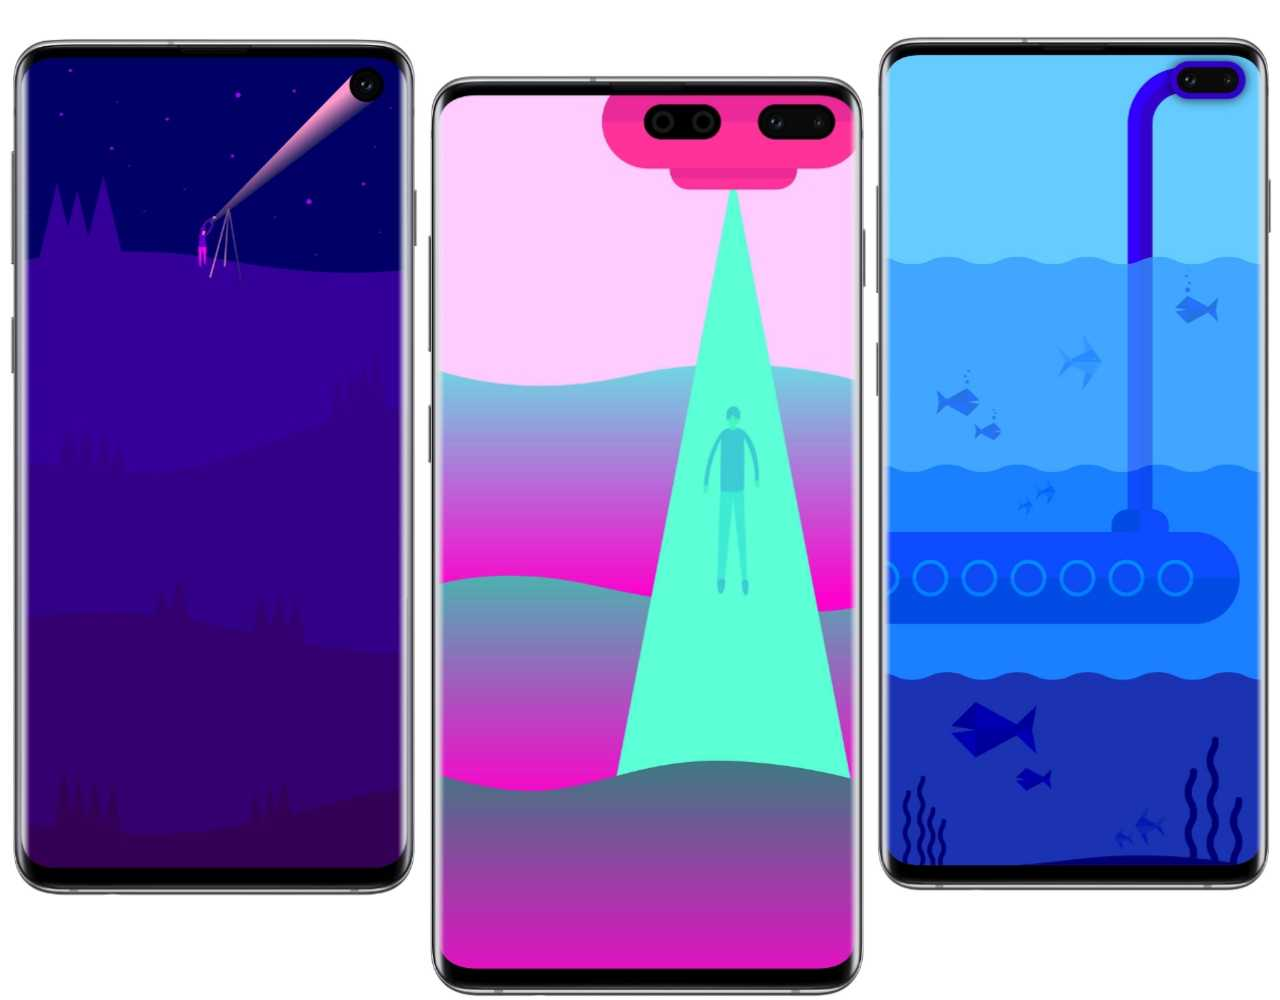 100 Best Hole Punch Wallpapers For Samsung Galaxy S10 S10 S10e